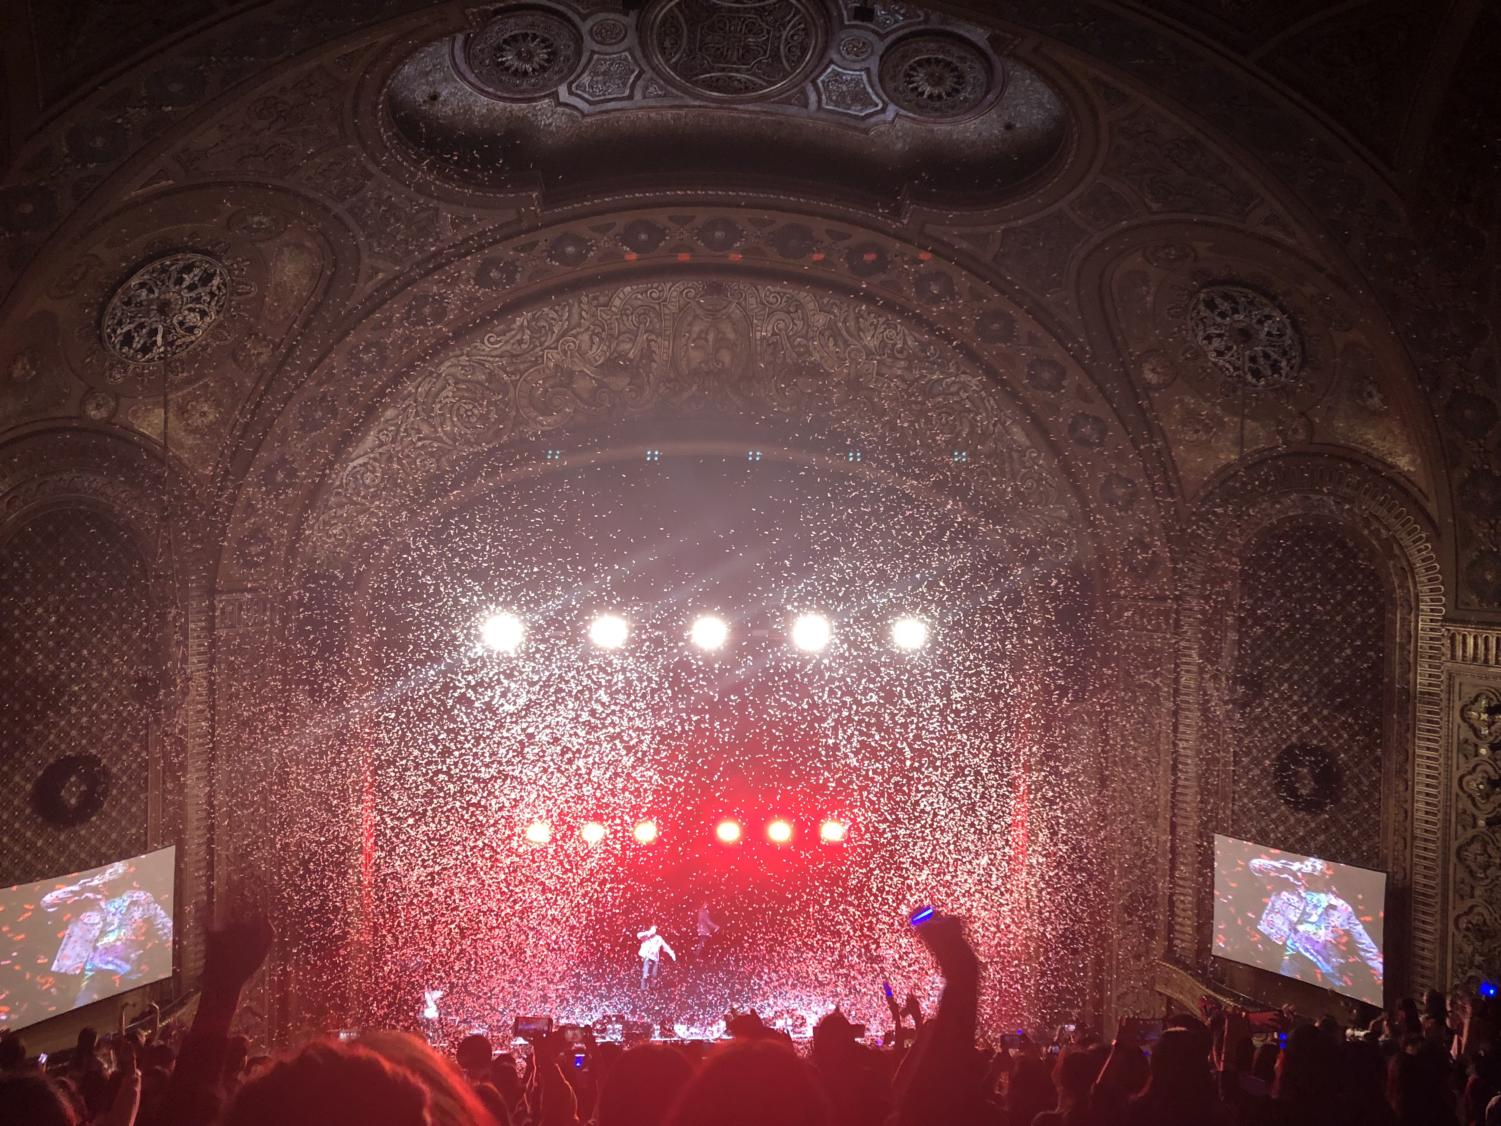 K-pop winners performance at Seattle Paramount in January, 2019. Photo courtesy of Bryan Shon.